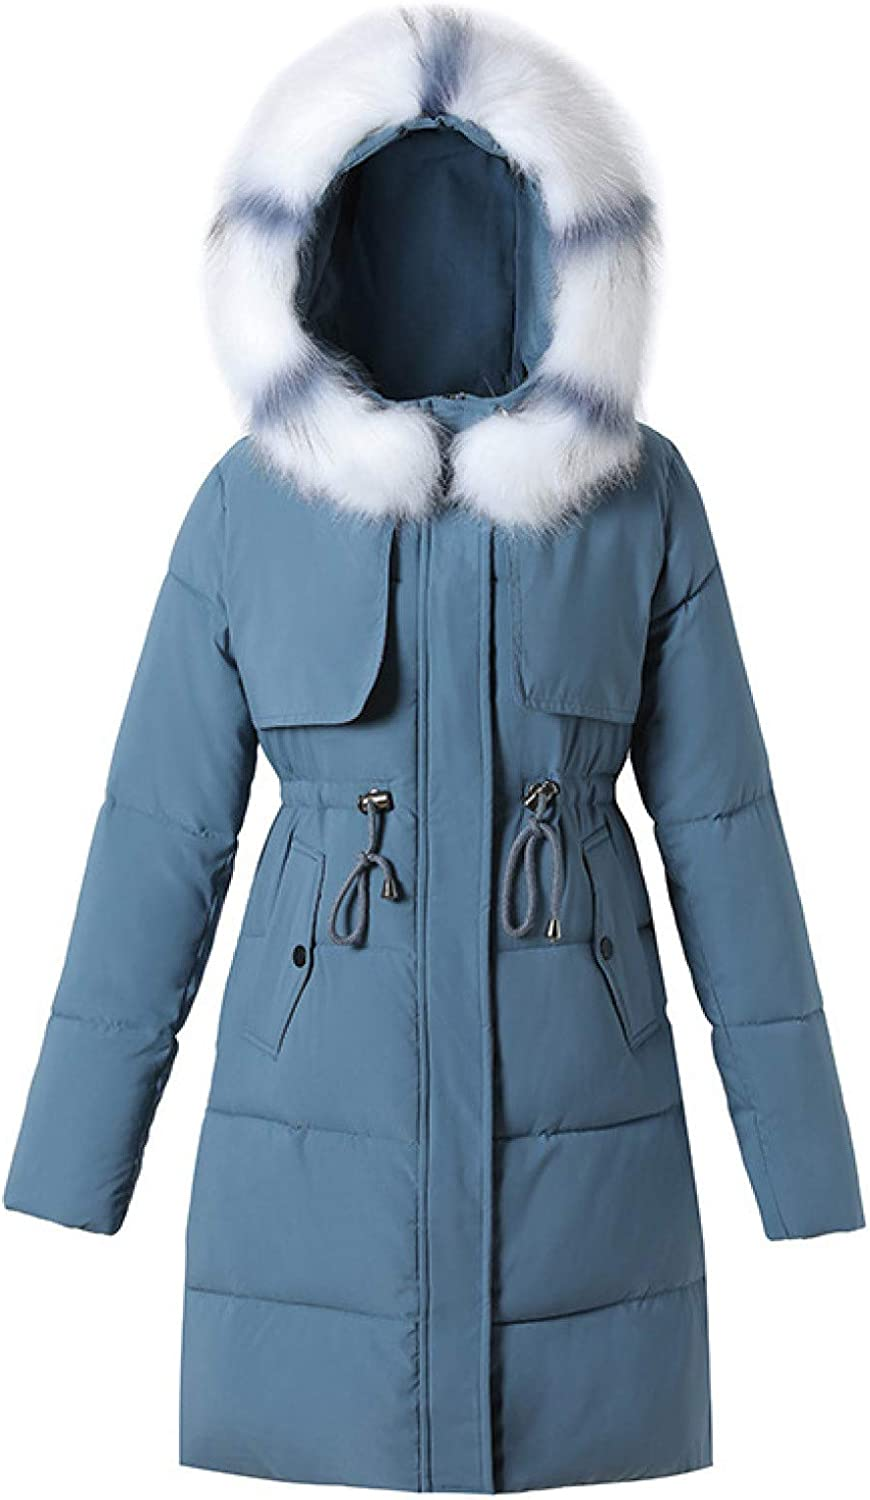 Womens Faux Fur Trim Hood Padding Outerwear , Ladies Quilted Cotton Padded Winter Coat with Pockets